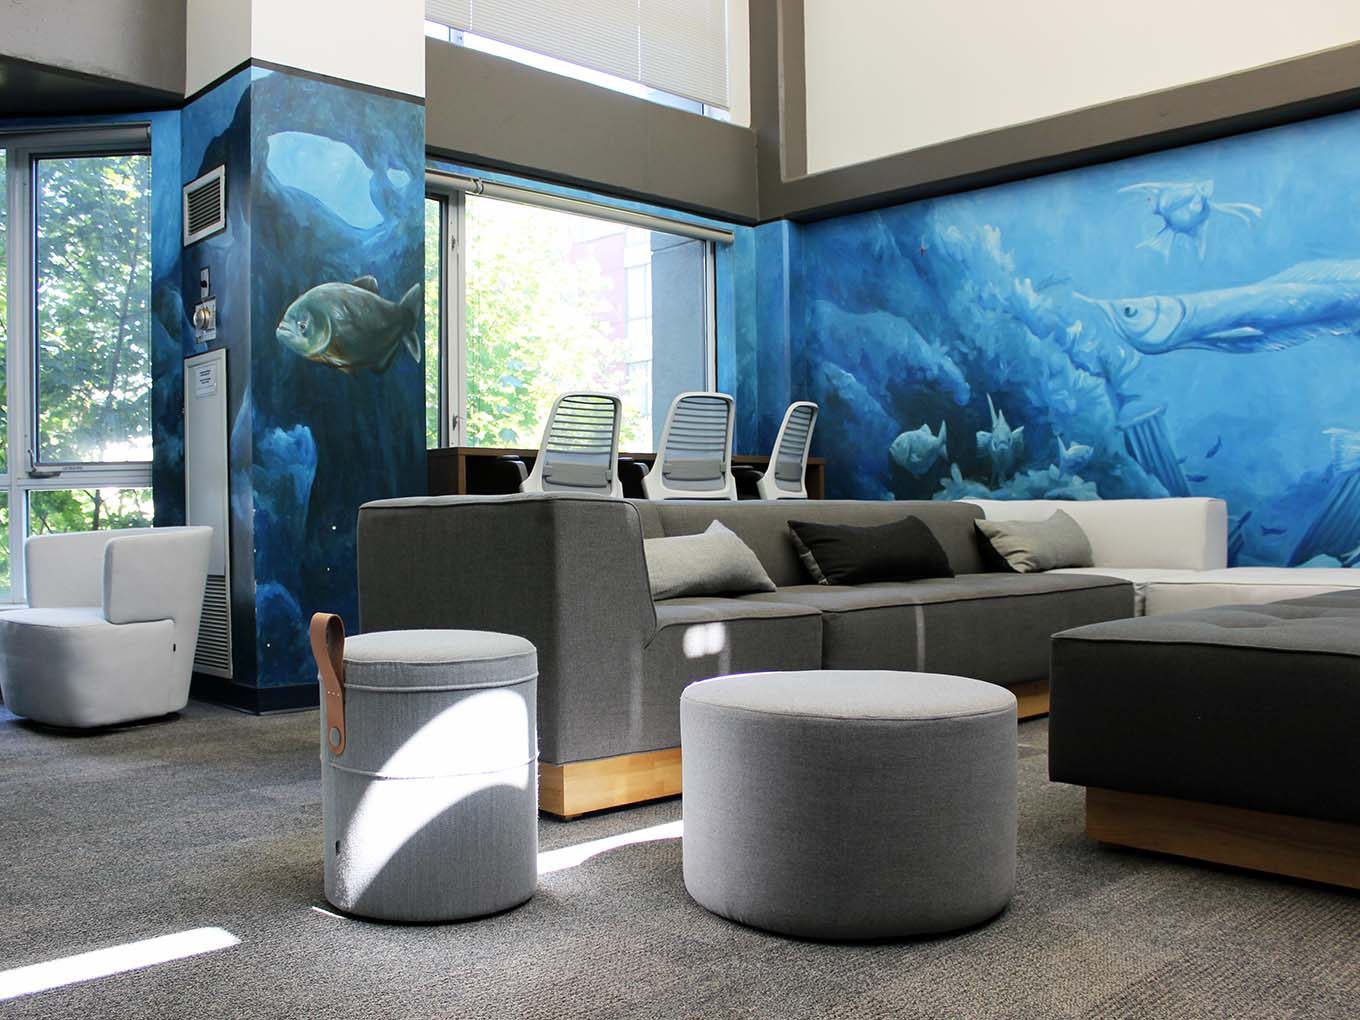 Suites and Amenities - Fish bowl